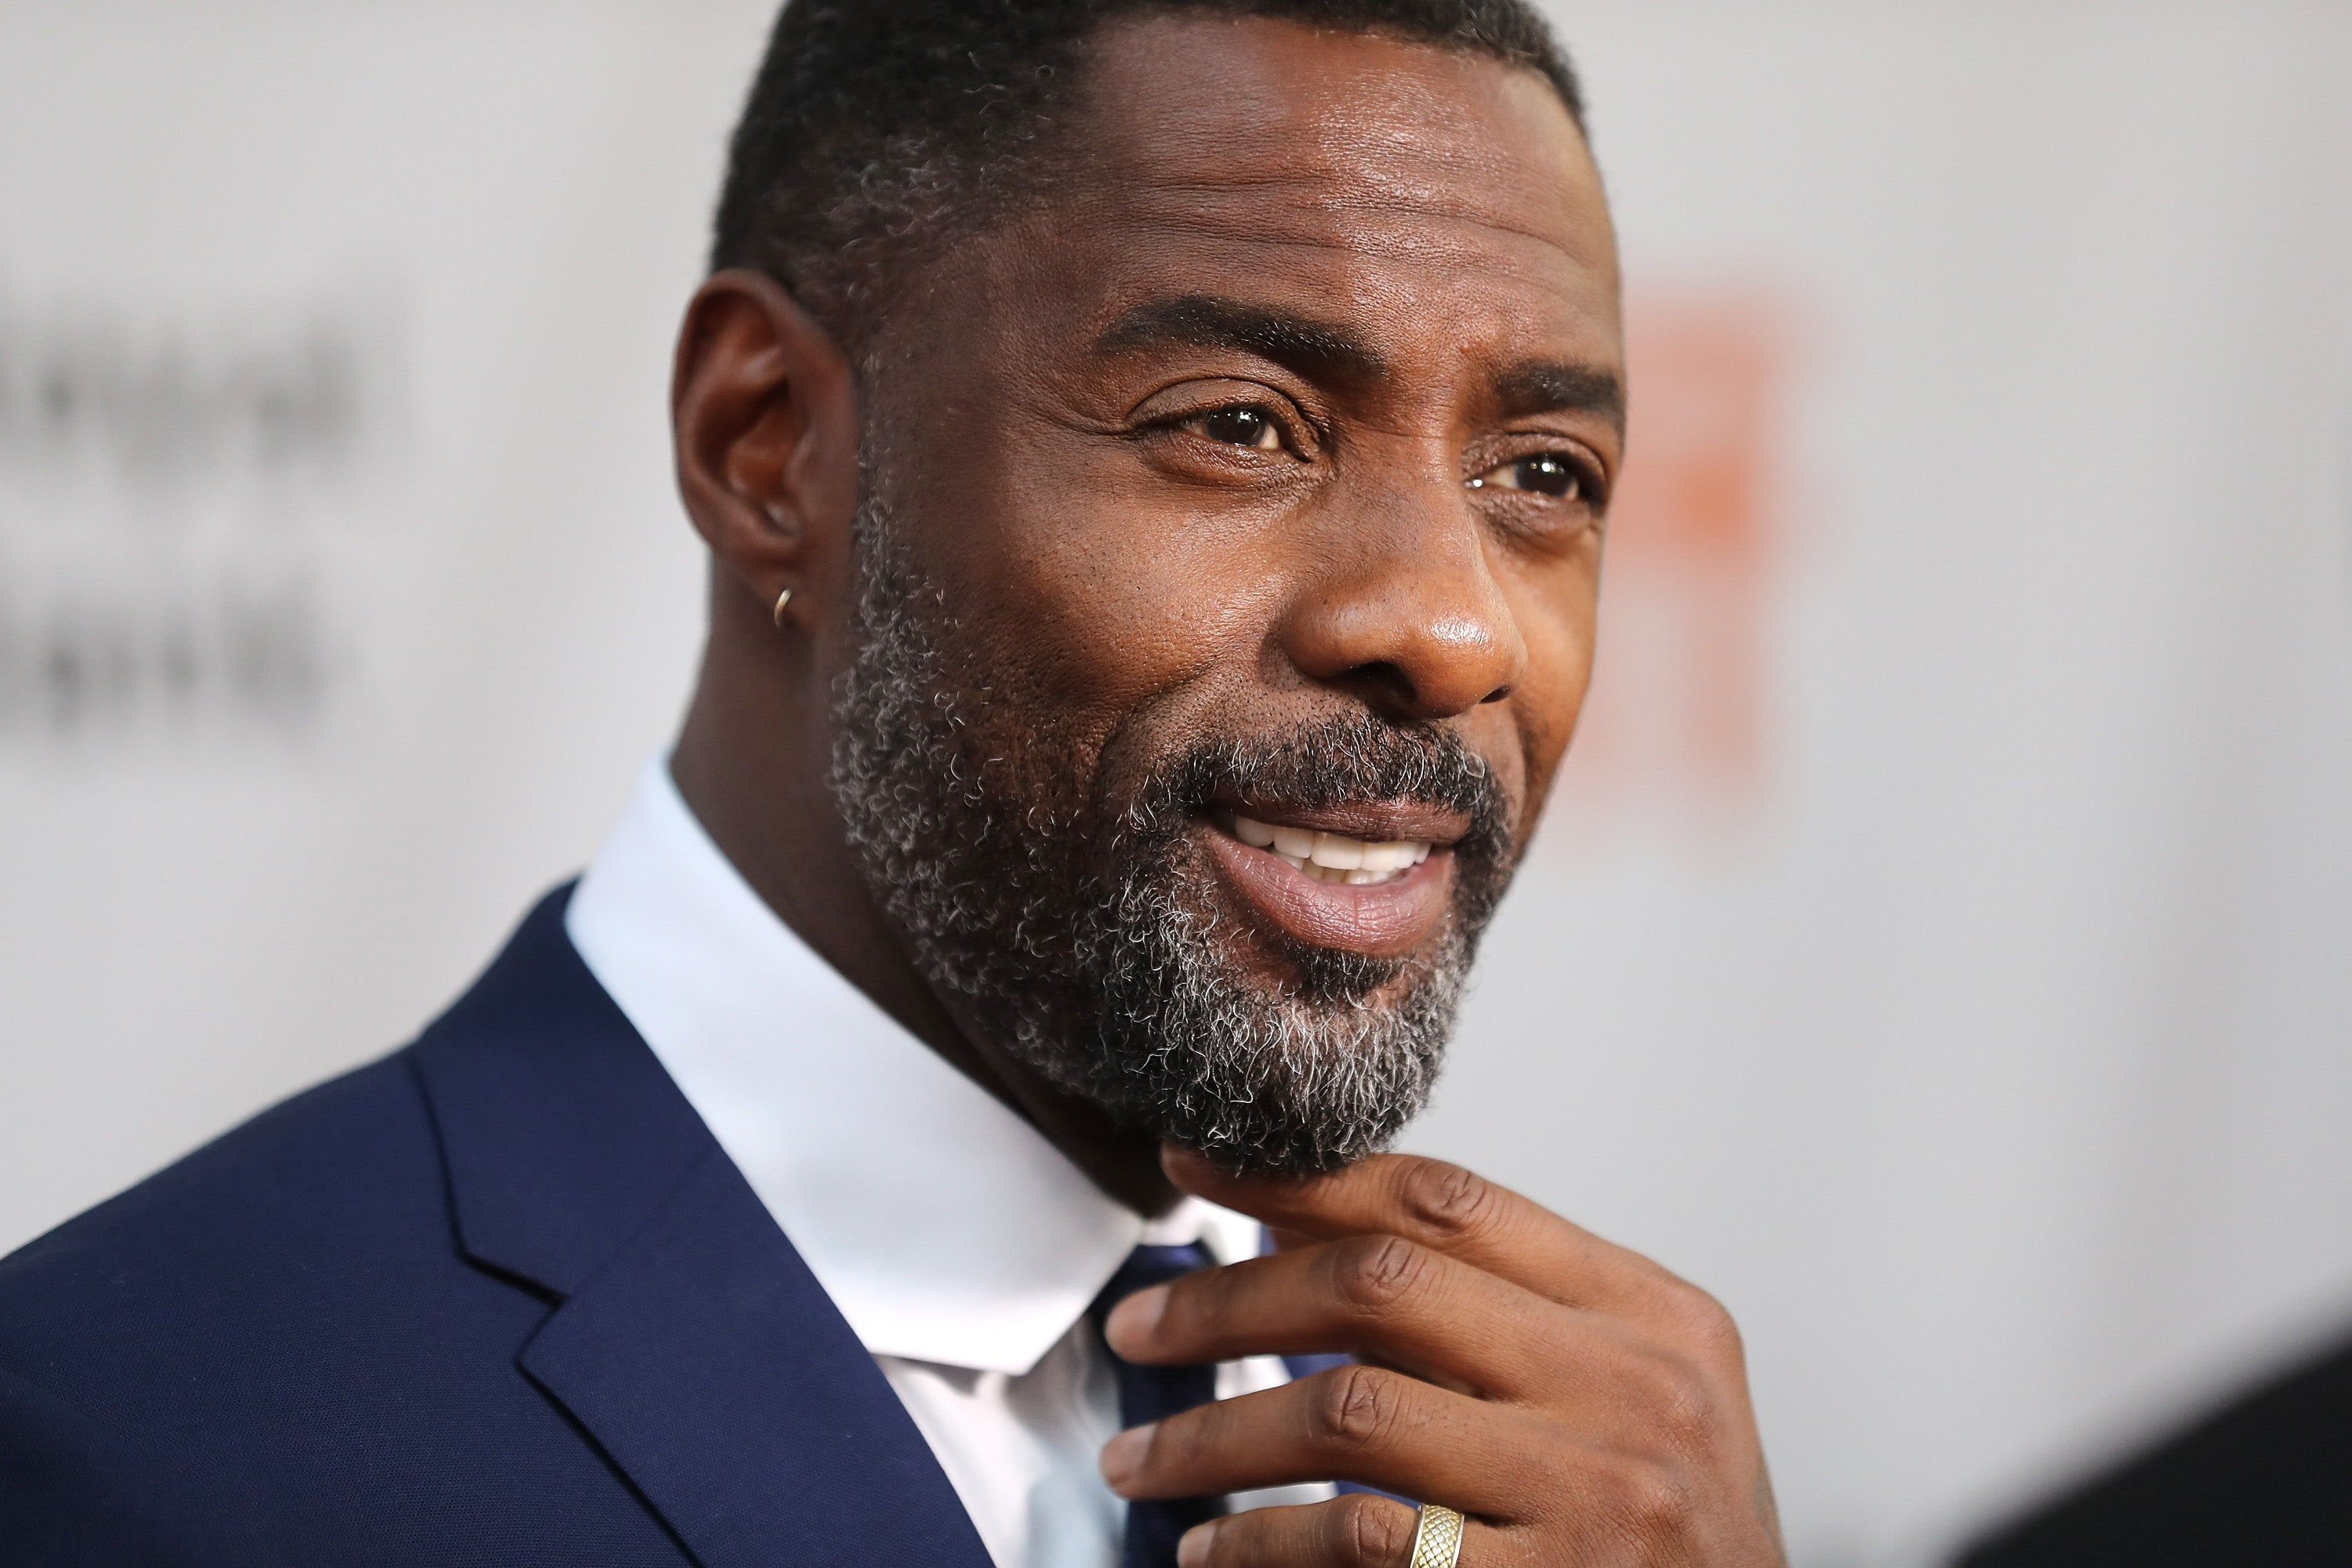 Idris Elba Is One Step Closer to Playing James Bond, And We're Here For It